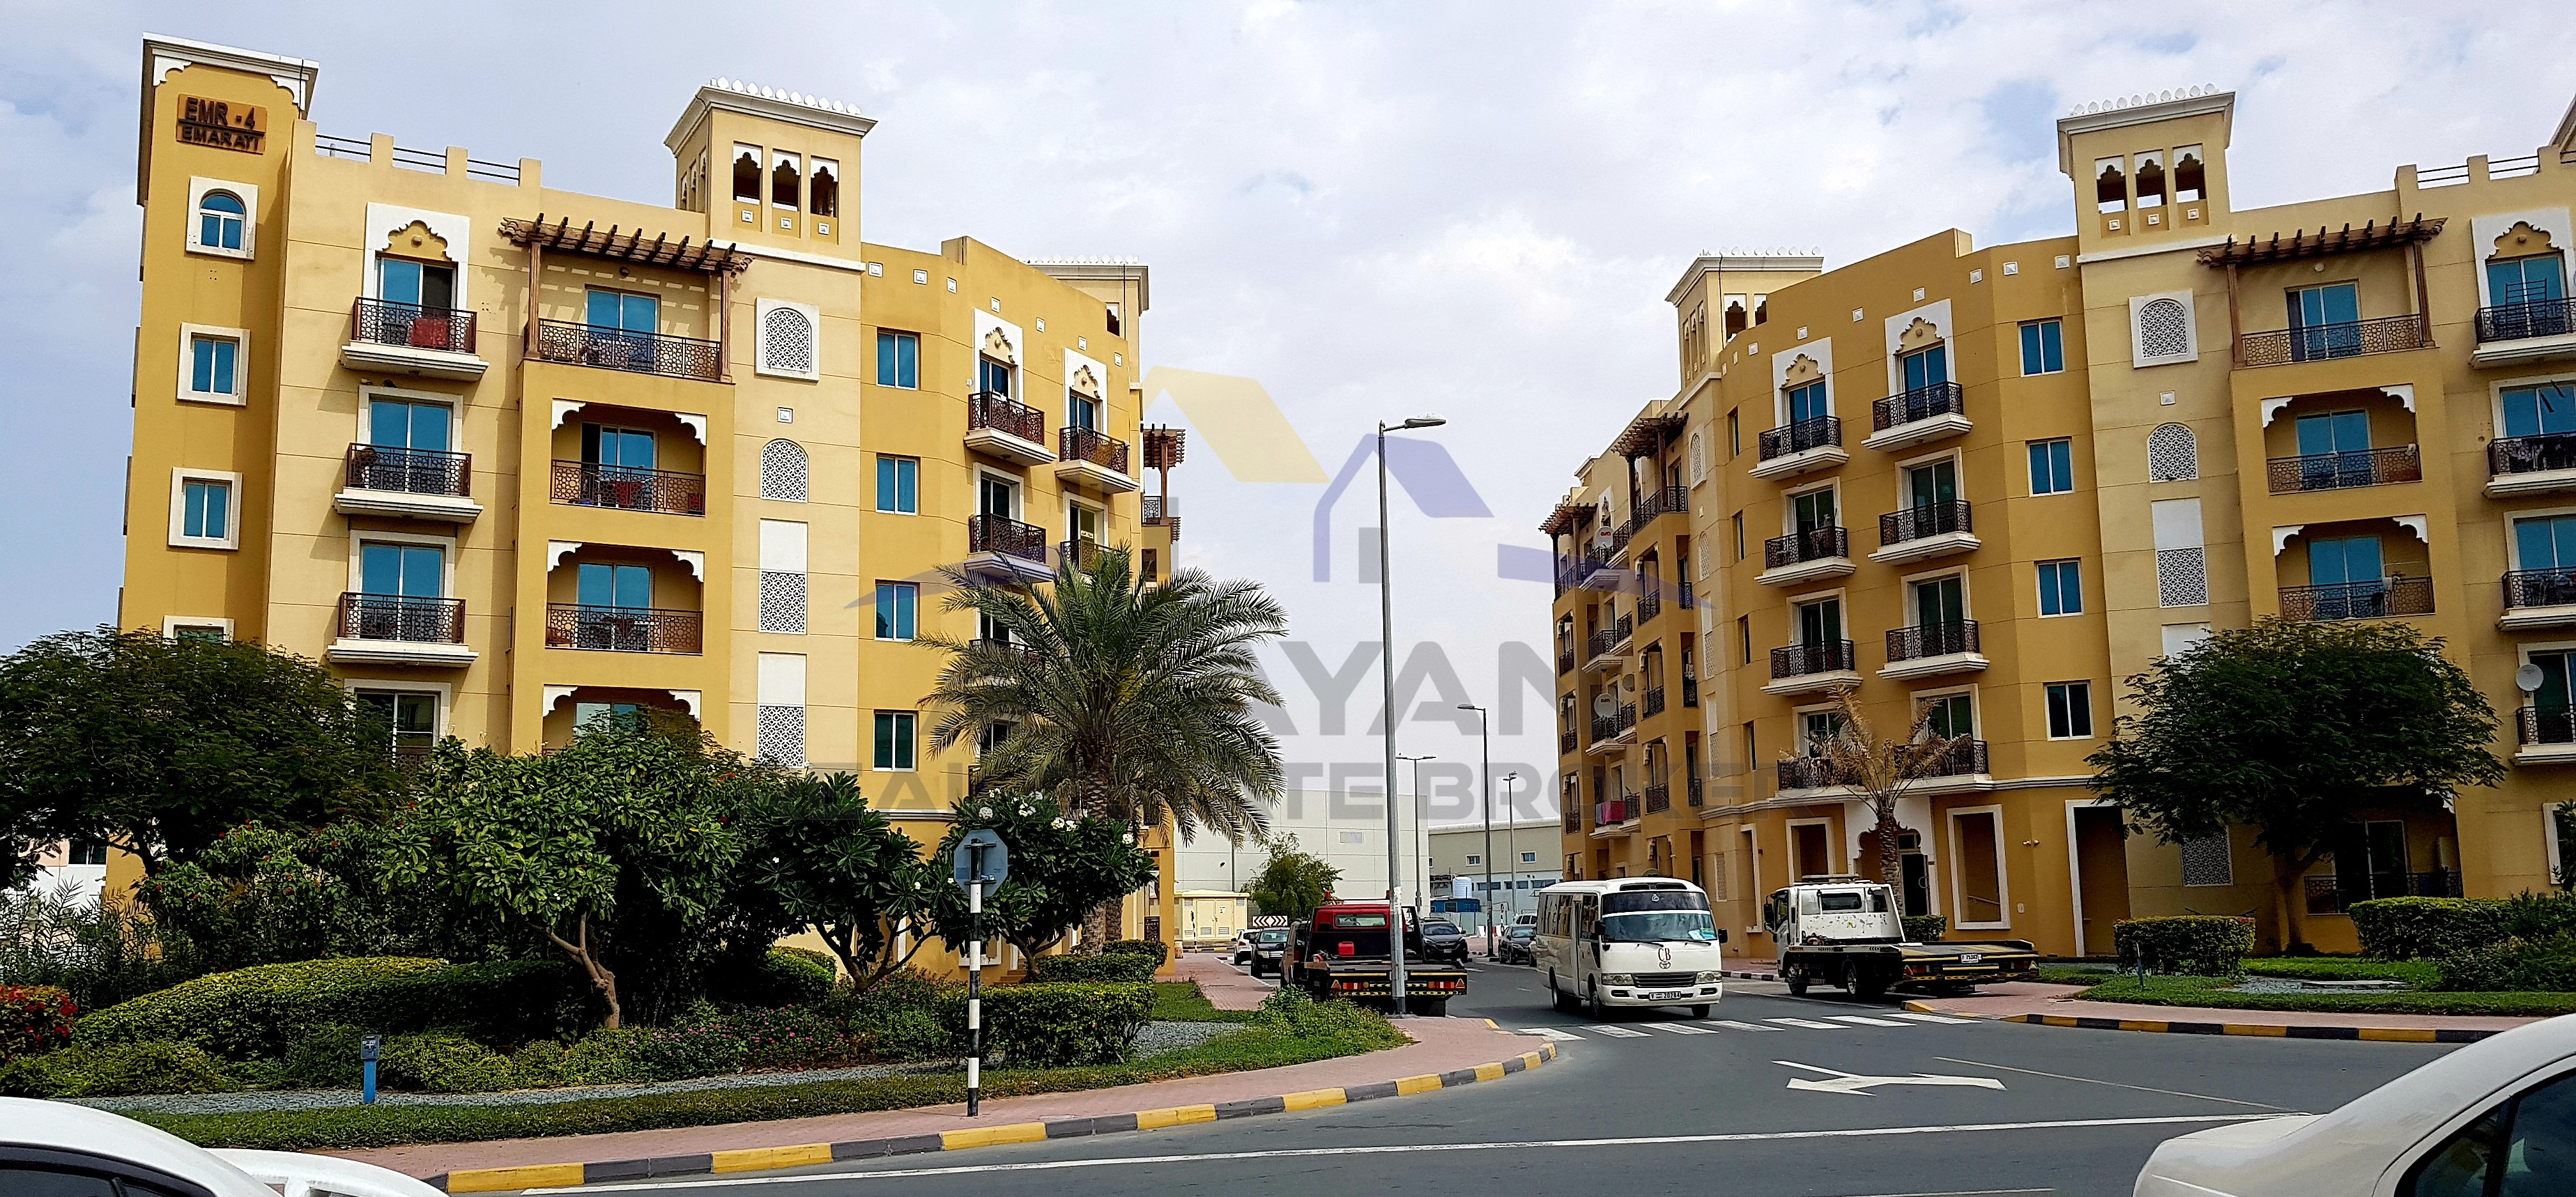 FOR RENT: 1 BHK l BALCONY l EMIRATES CLUSTER l 25,000/-